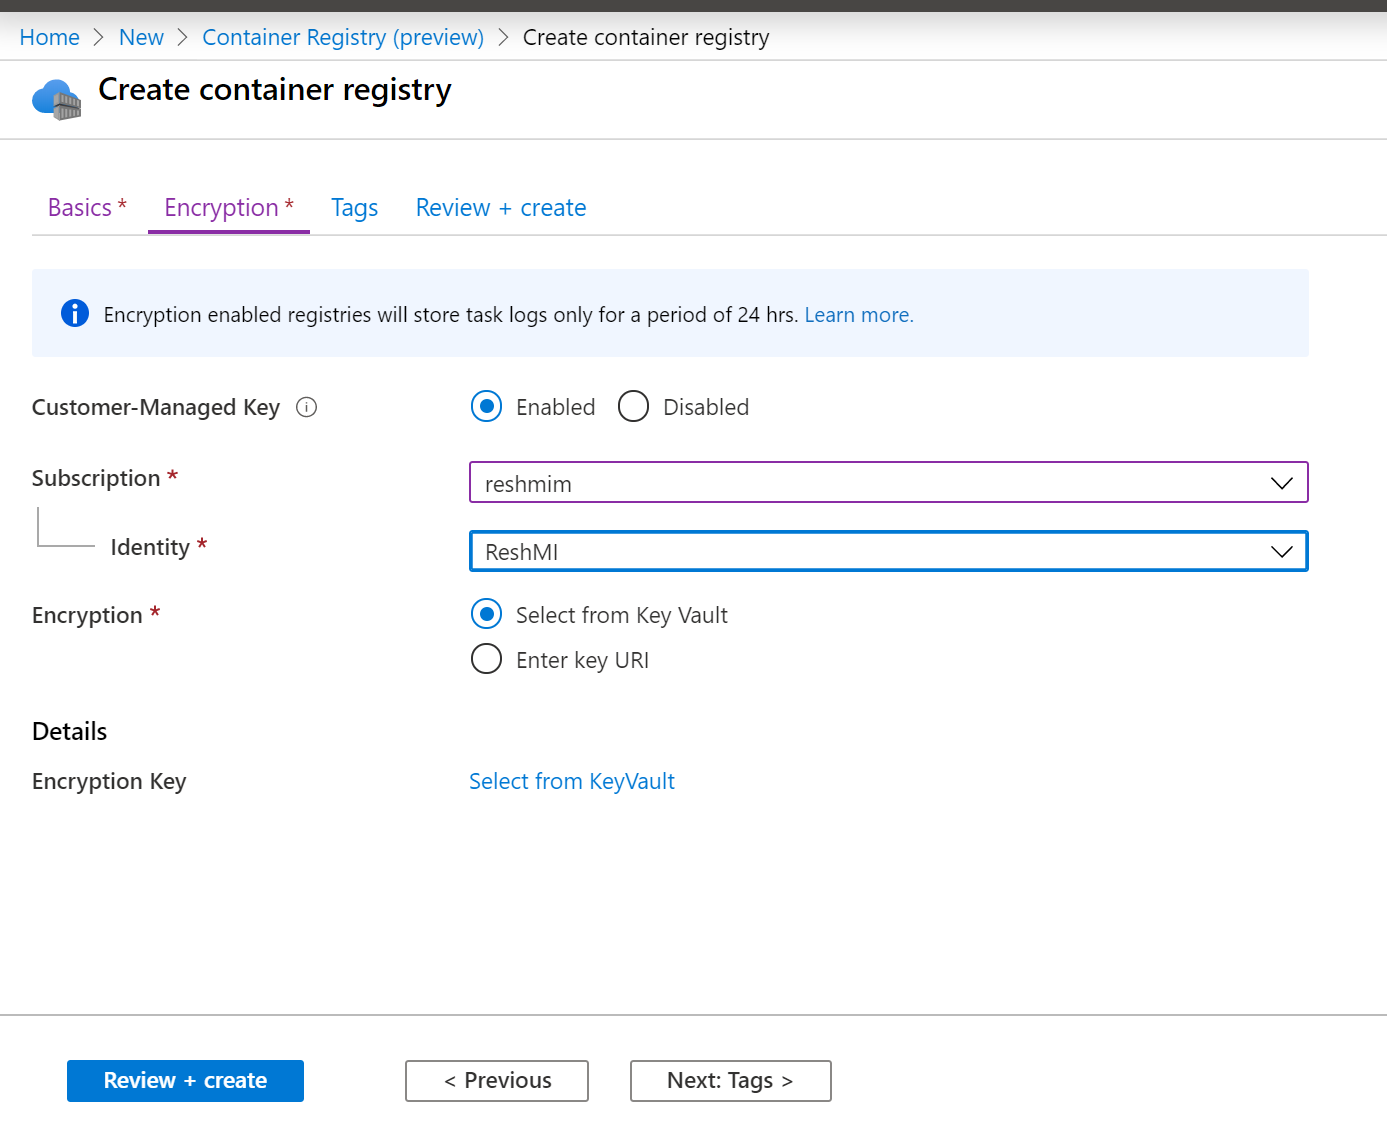 Figure 1: Create Container Registry with customer-managed keys encryption enabled